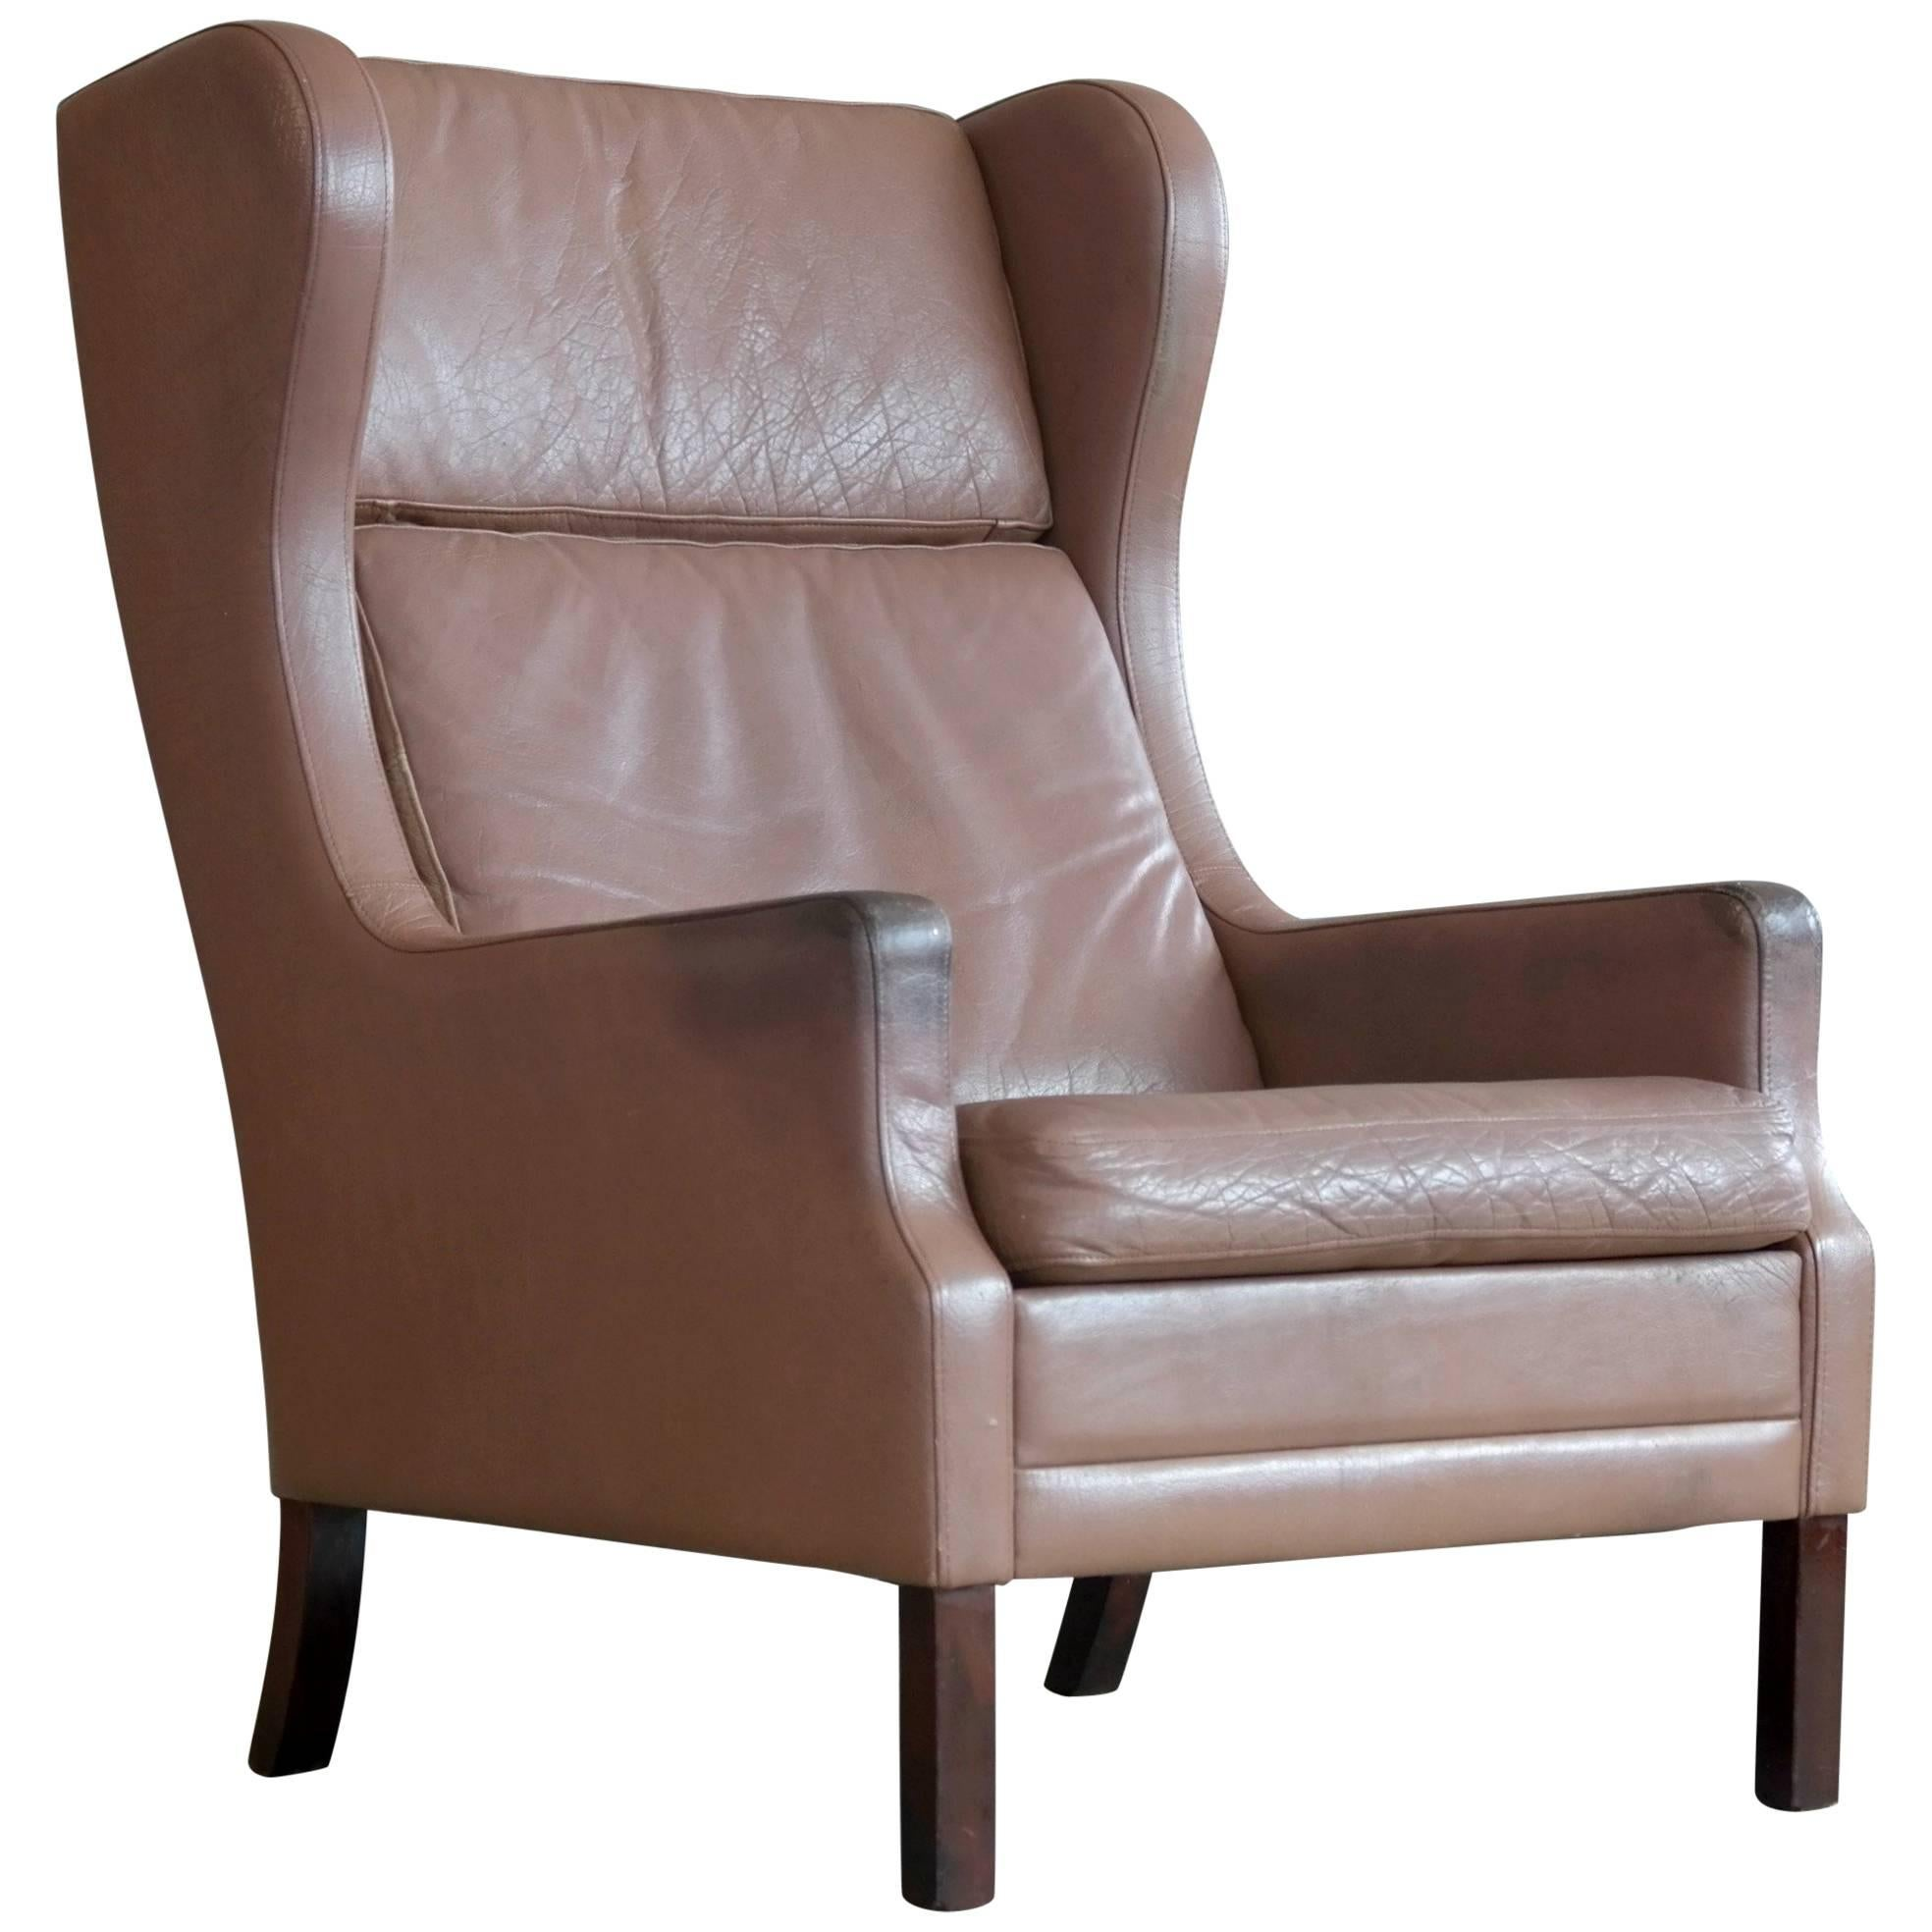 Georg Thams Wingback Chair in Cappuccino Colored Leather Borge Mogensen Style